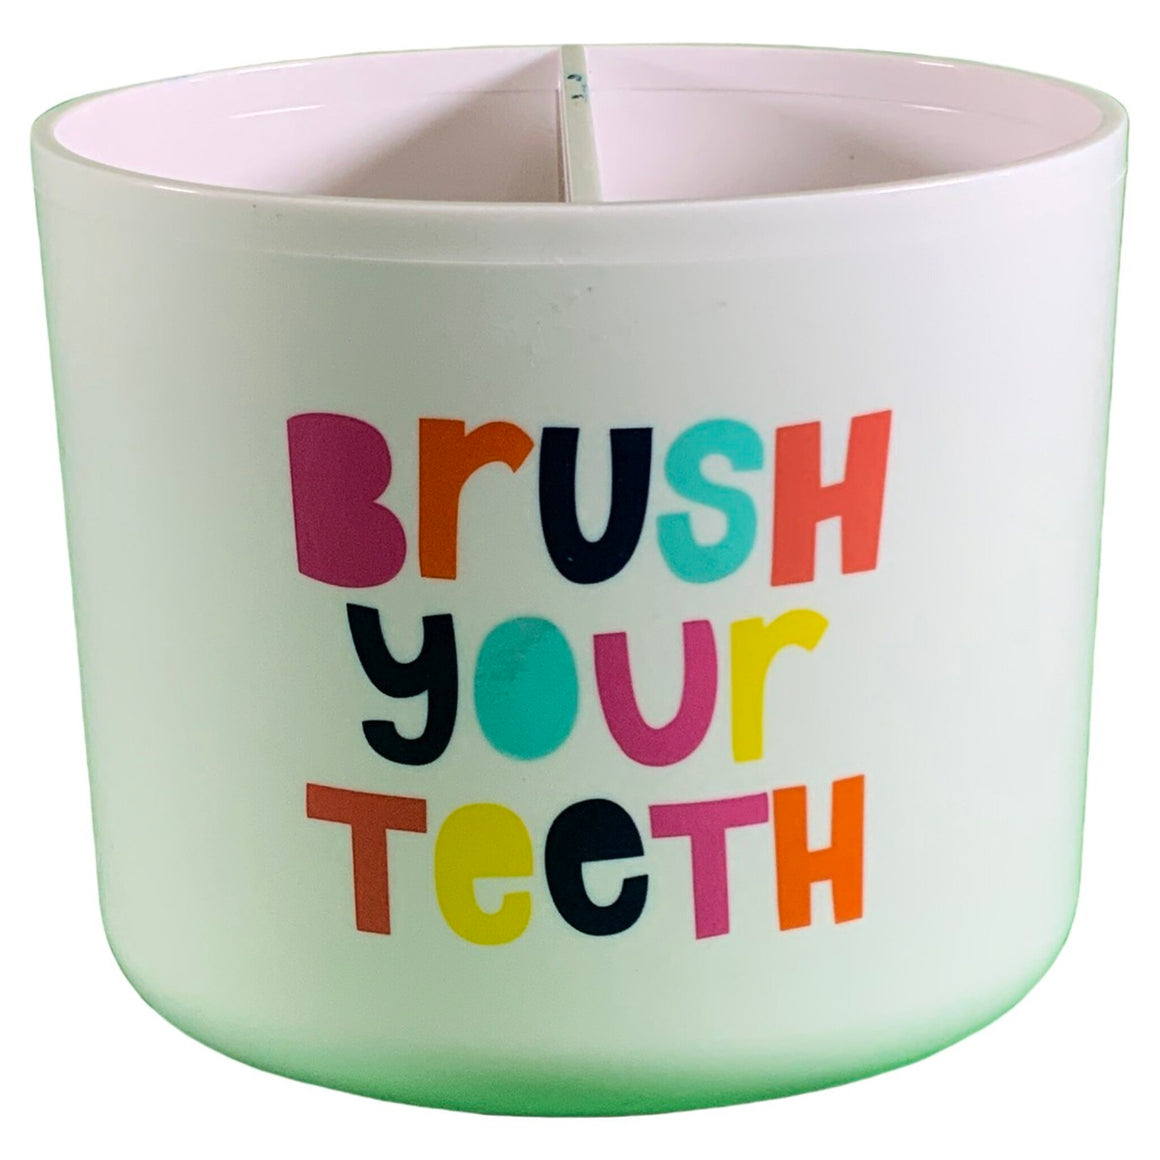 Brush Your Teeth Toothbrush Holder White - Pillowfort™